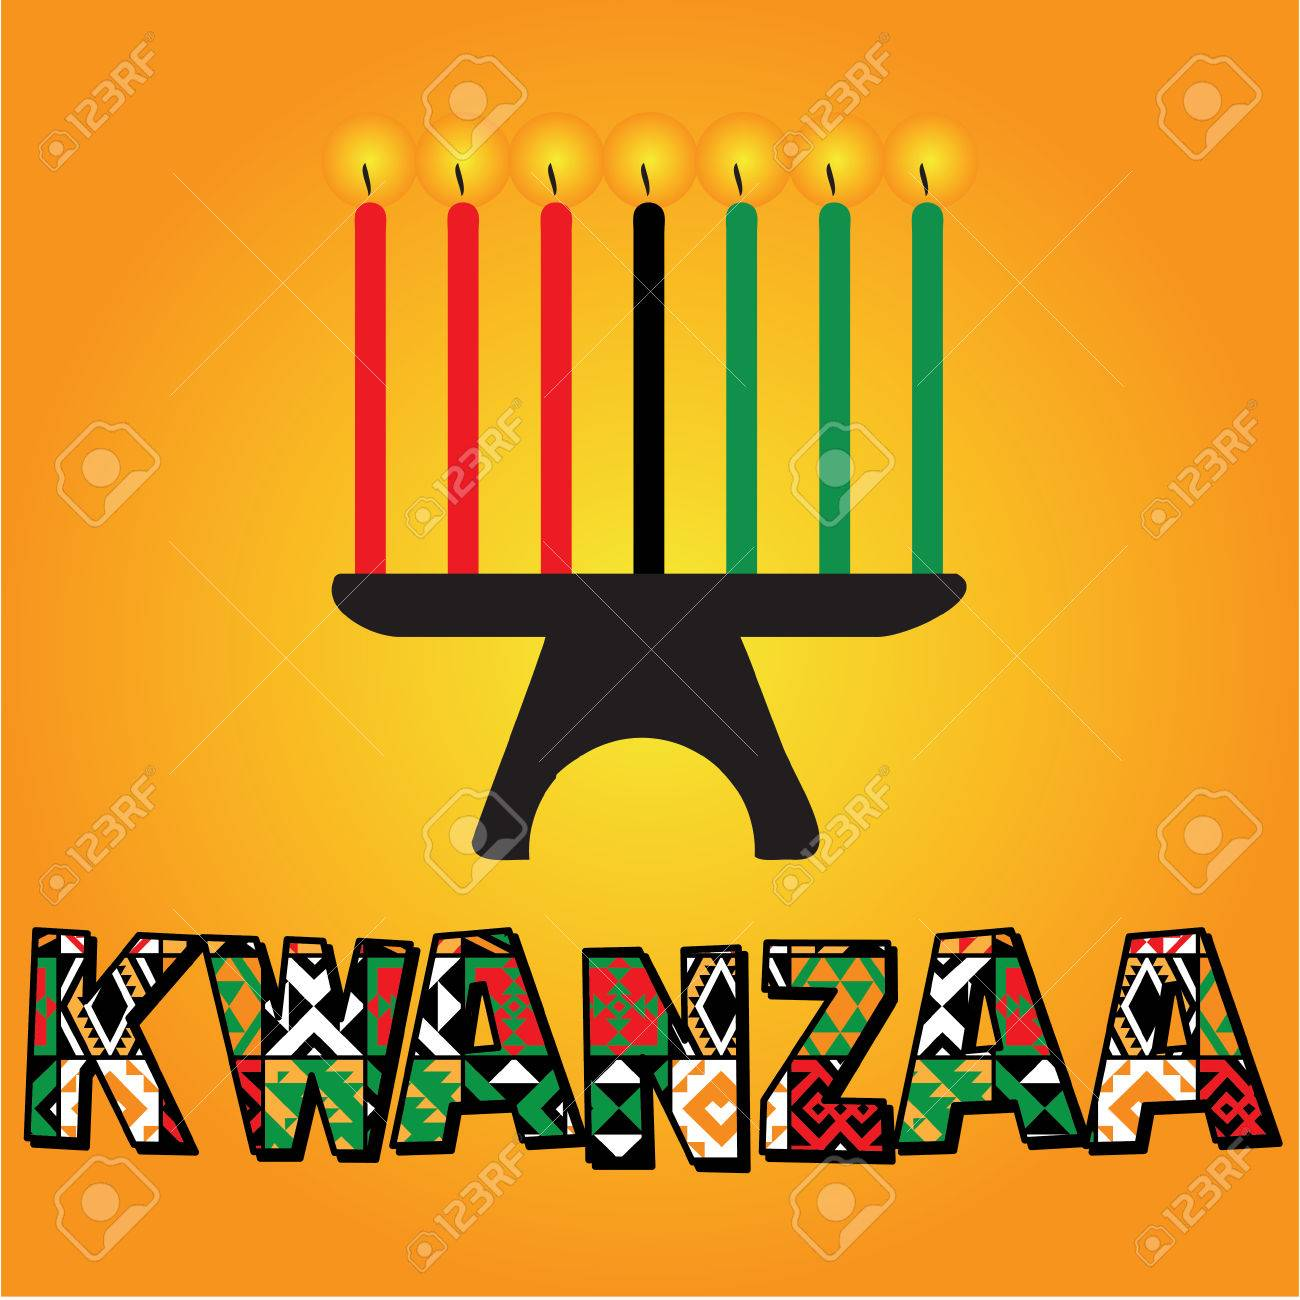 The seven kwanzaa candles illustration - 51007230